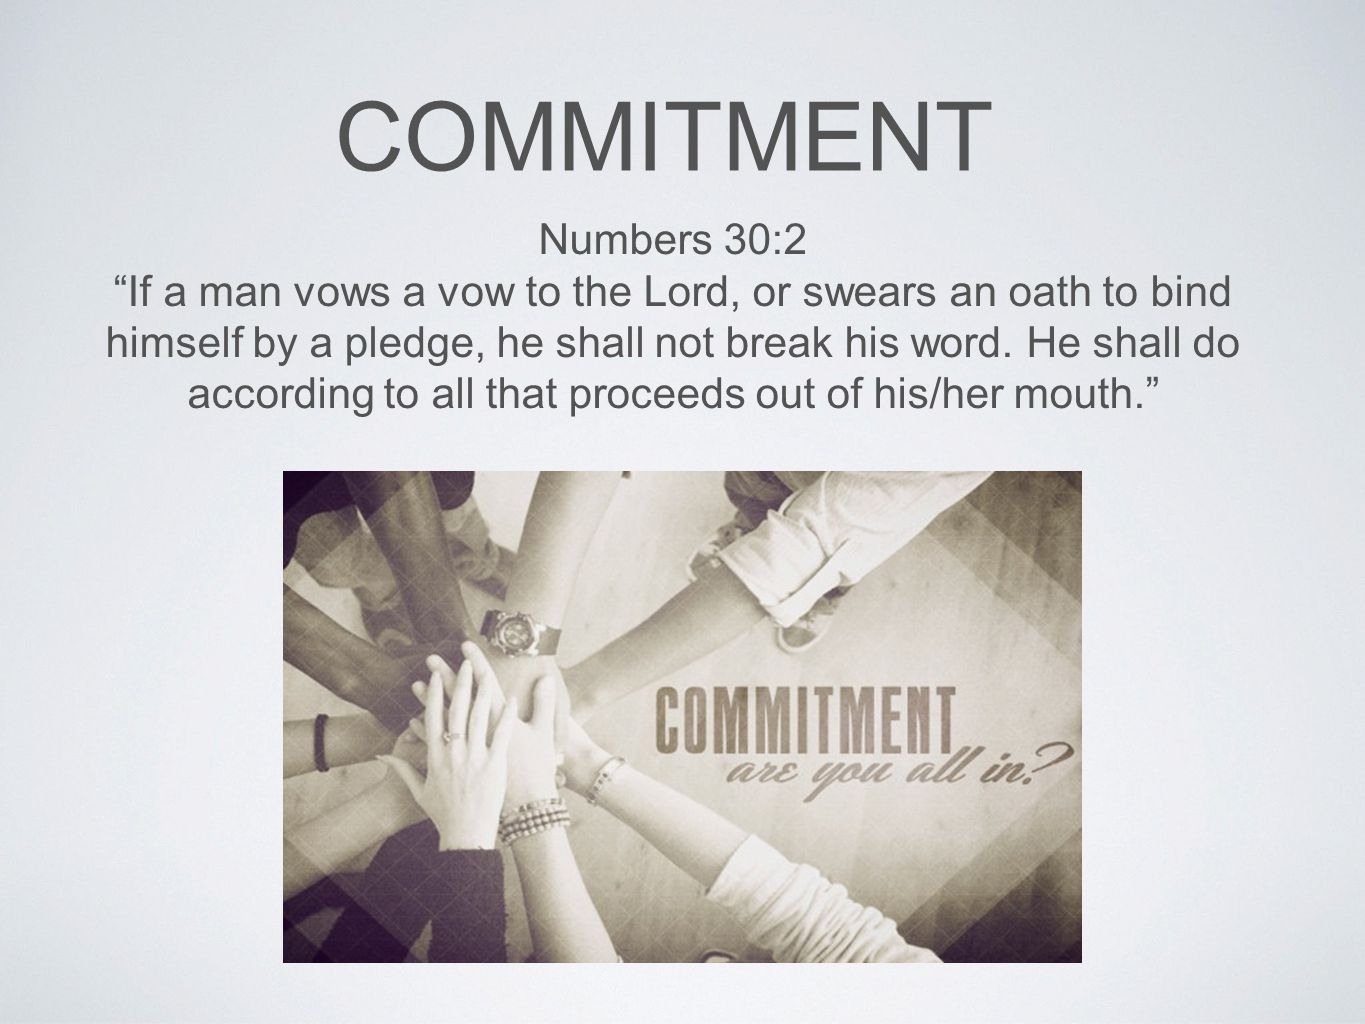 COMMITMENT Numbers 30:2 If a man vows a vow to the Lord, or swears an oath to bind himself by a pledge, he shall not break his word.